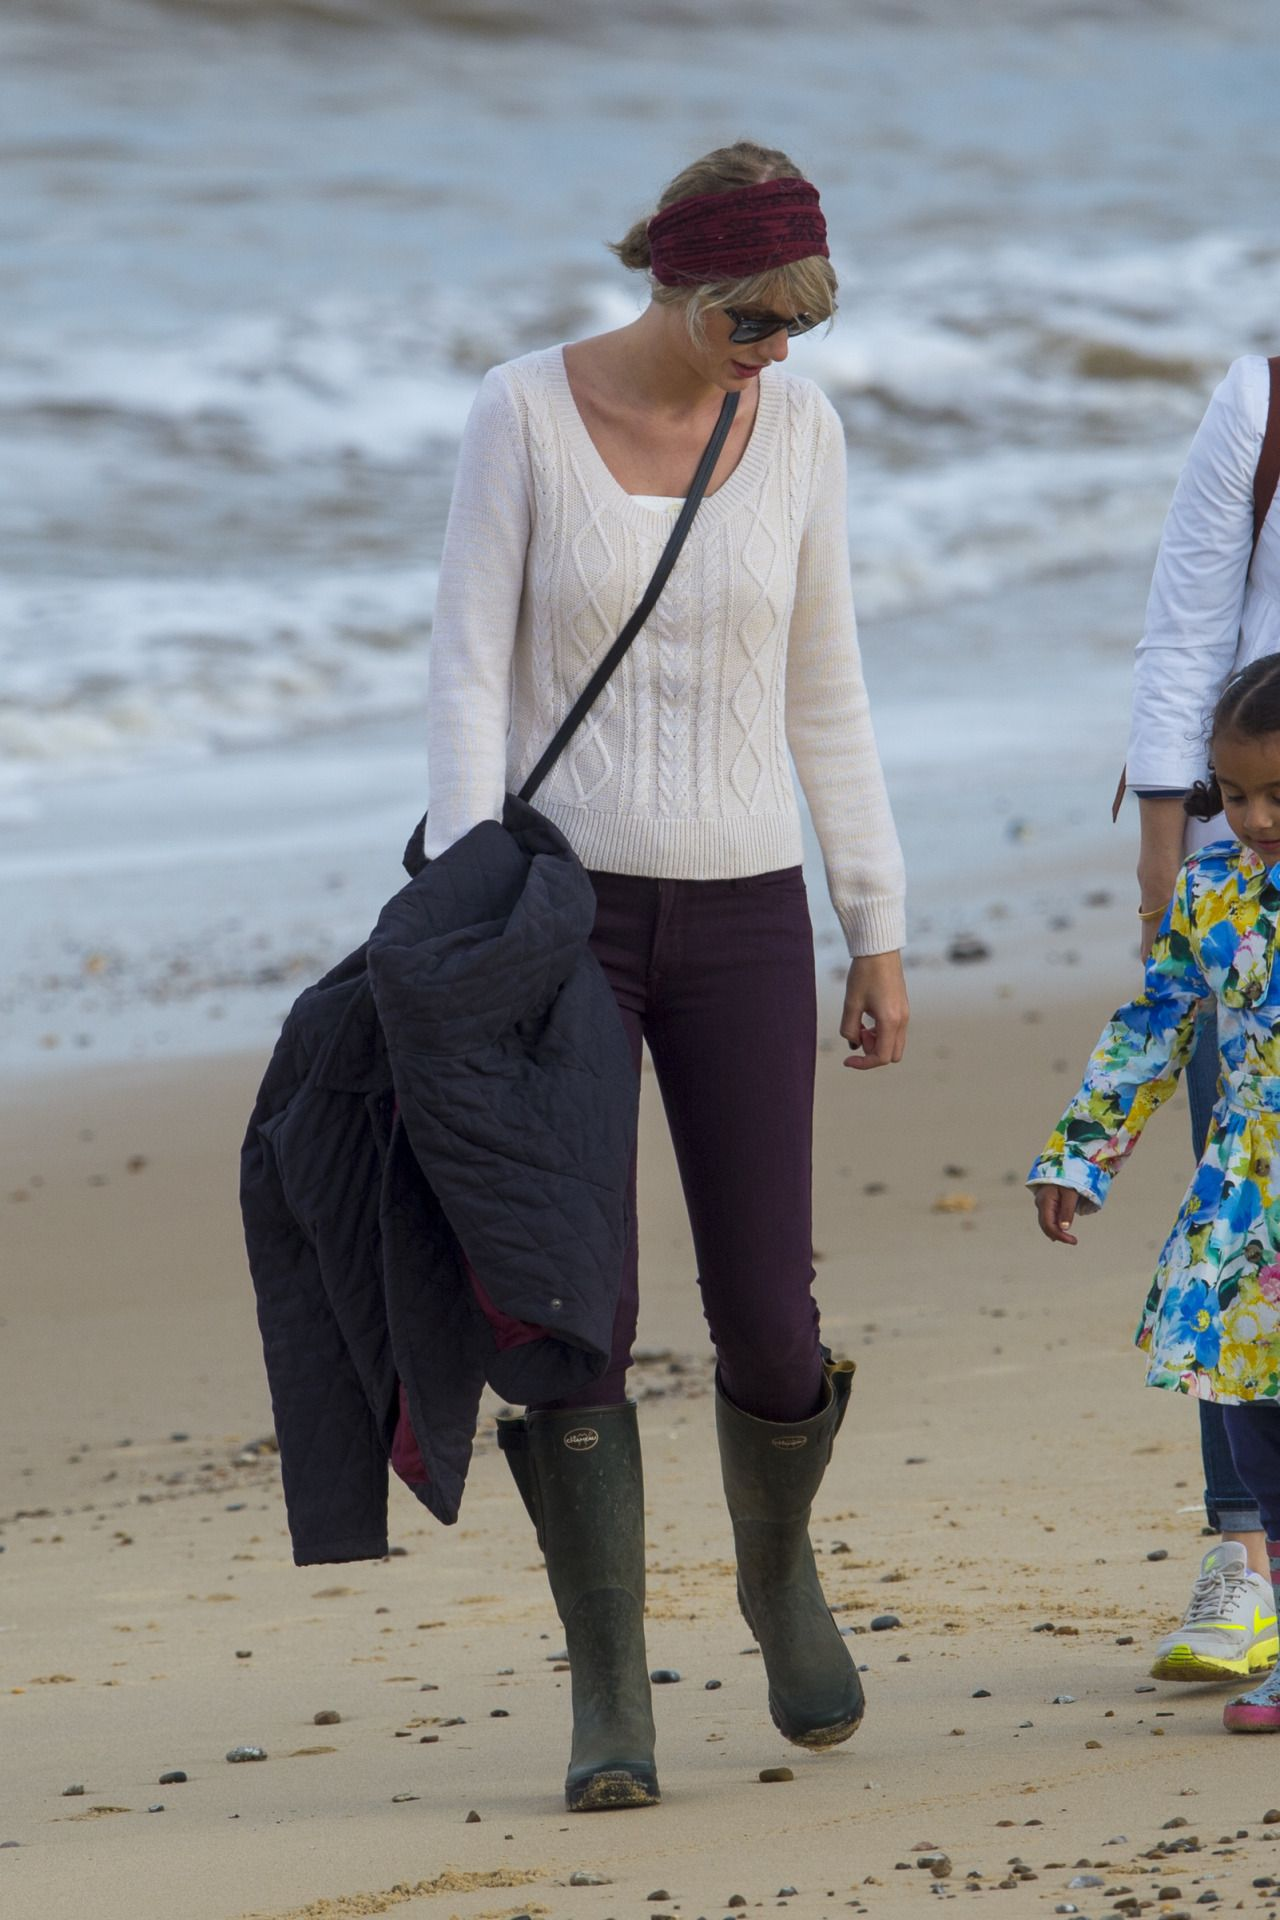 Taylor with Tom's niece at the beach in Suffolk 6.26.16